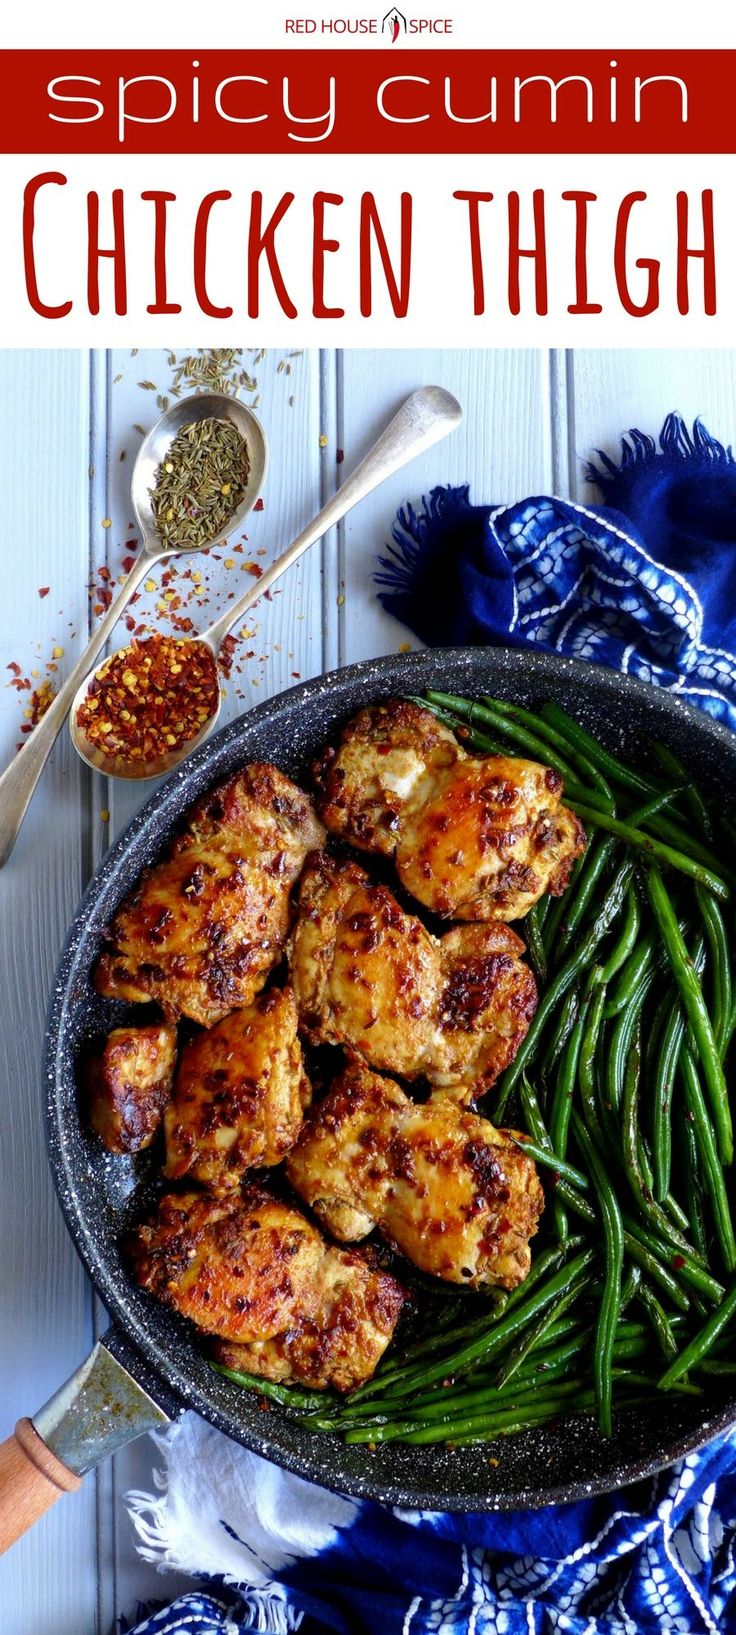 Quick to cook and difficult to fail, spicy cumin chicken thighs with green beans is inspired by a popular Chinese street food. An easy pan-fried dish full of flavour. via @redhousespice